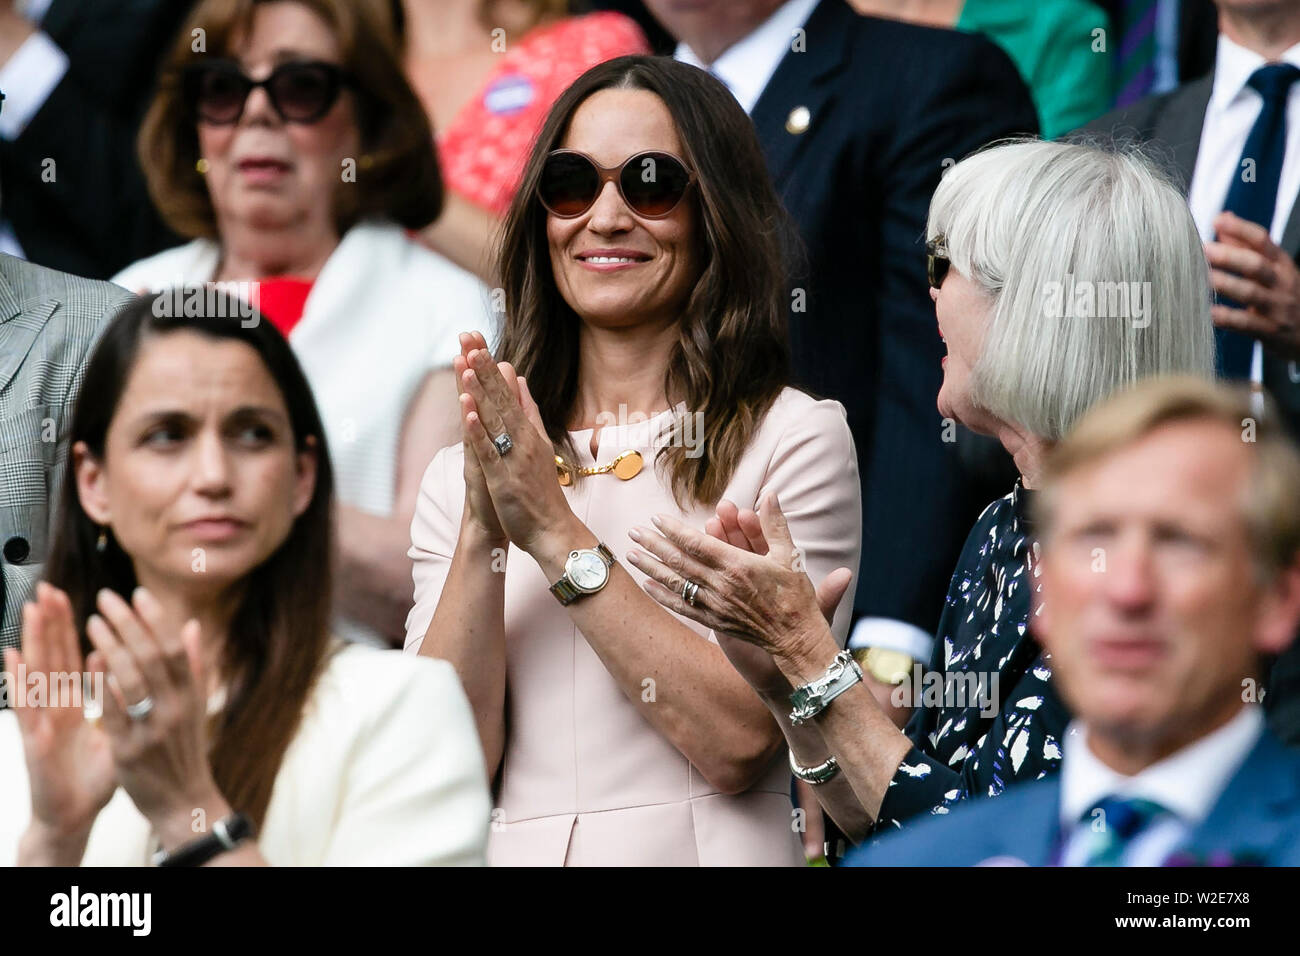 London, UK, 8th July 2019: Pippa Middleton visits the Wimbledon Tennis Championships 2019 at the All England Lawn Tennis and Croquet Club in London. Credit: Frank Molter/Alamy Live news Stock Photo